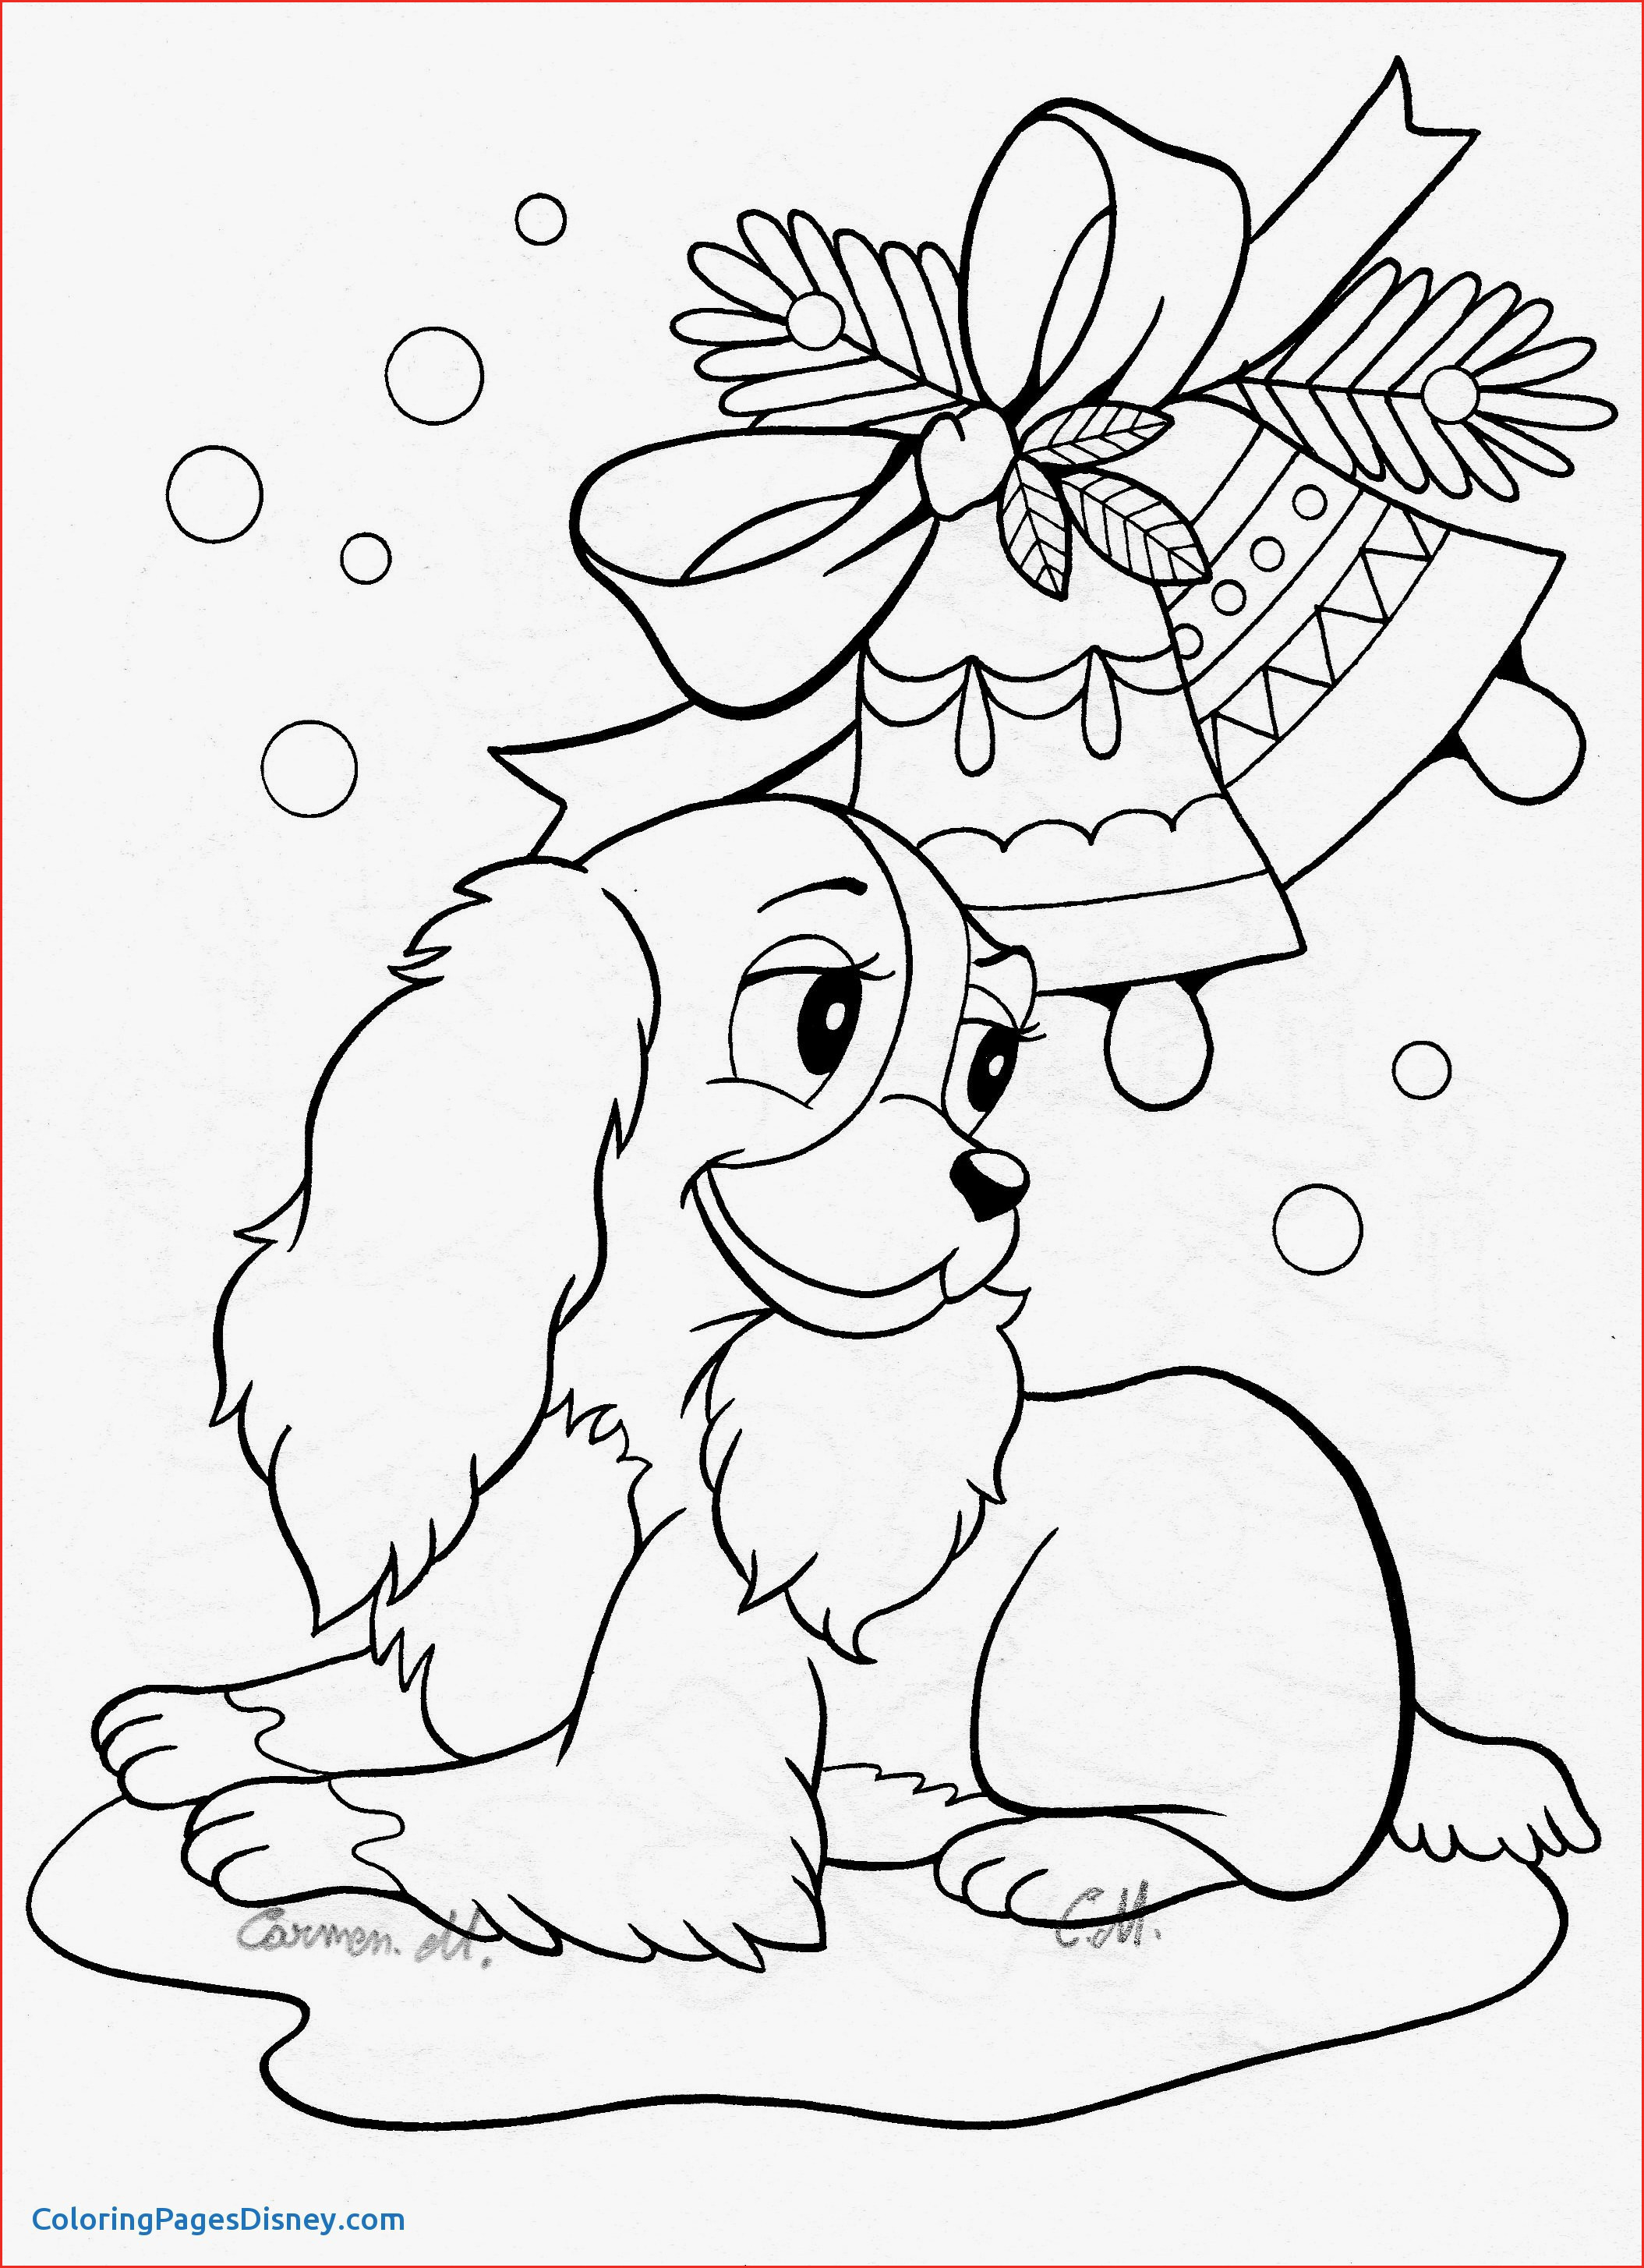 Outer Space Coloring Pages How To Draw Aliens 65489 Outer Space Coloring Pages Alien Coloring